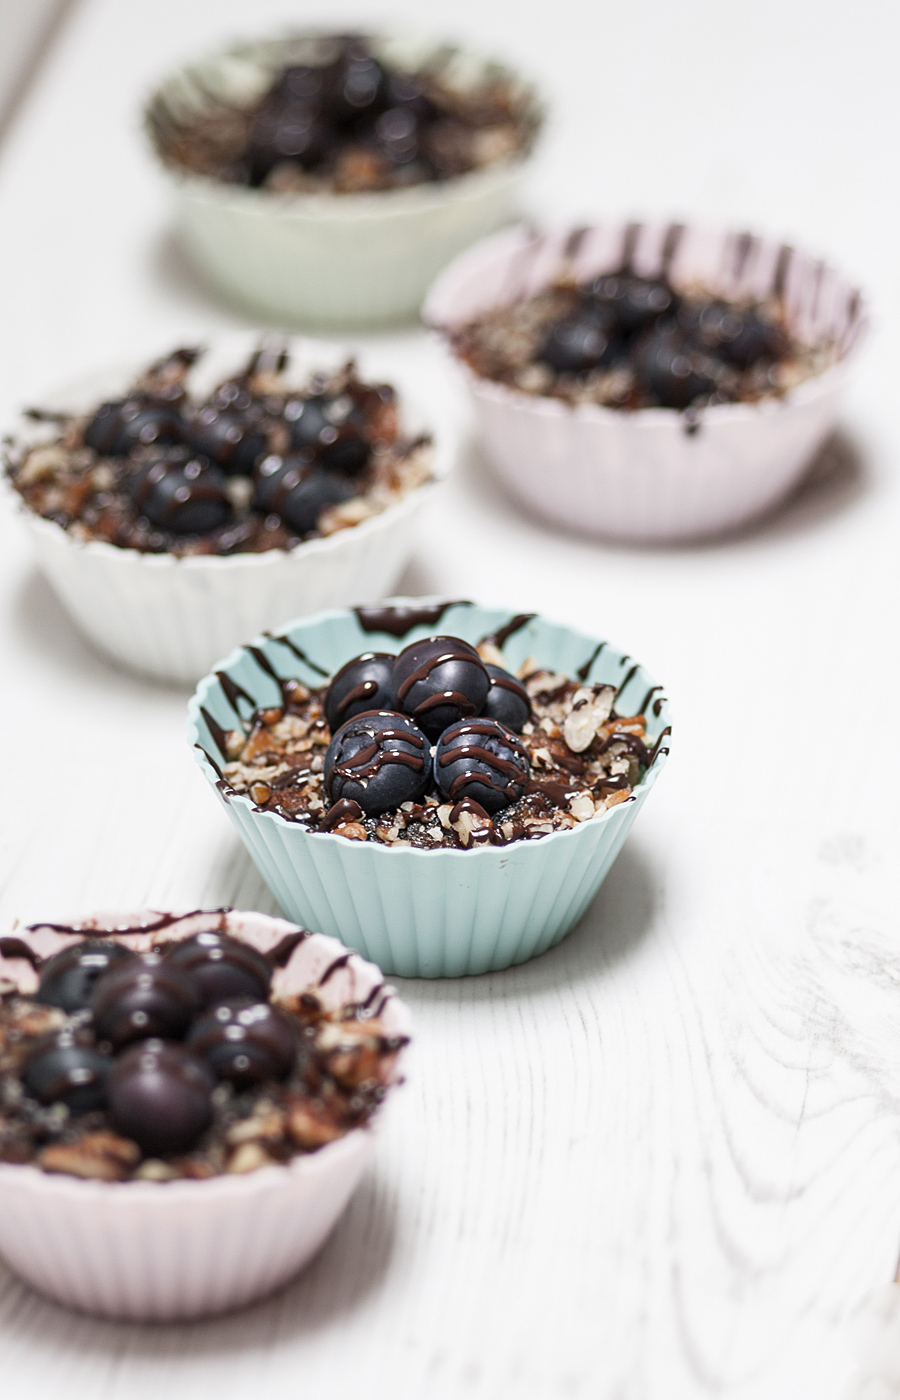 Blueberry pumpkin muffins with melted chocolate (Paleo, GF) | Lau Sunday cooks